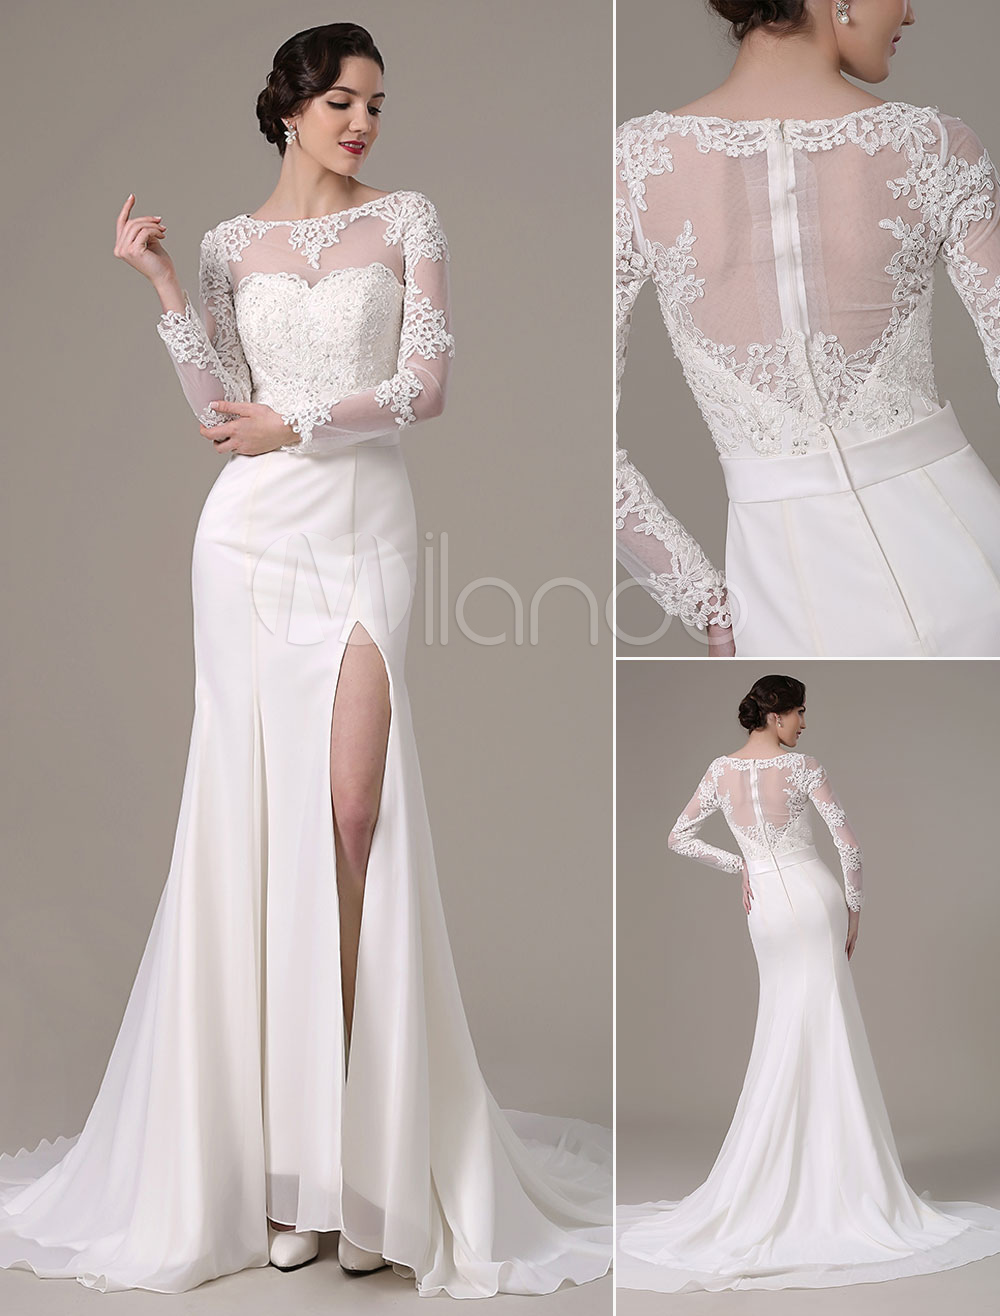 2018 Vintage Lace Wedding Dress Long Sleeves Bateau Neck Sheer Back High Slit(Veil not included) Milanoo